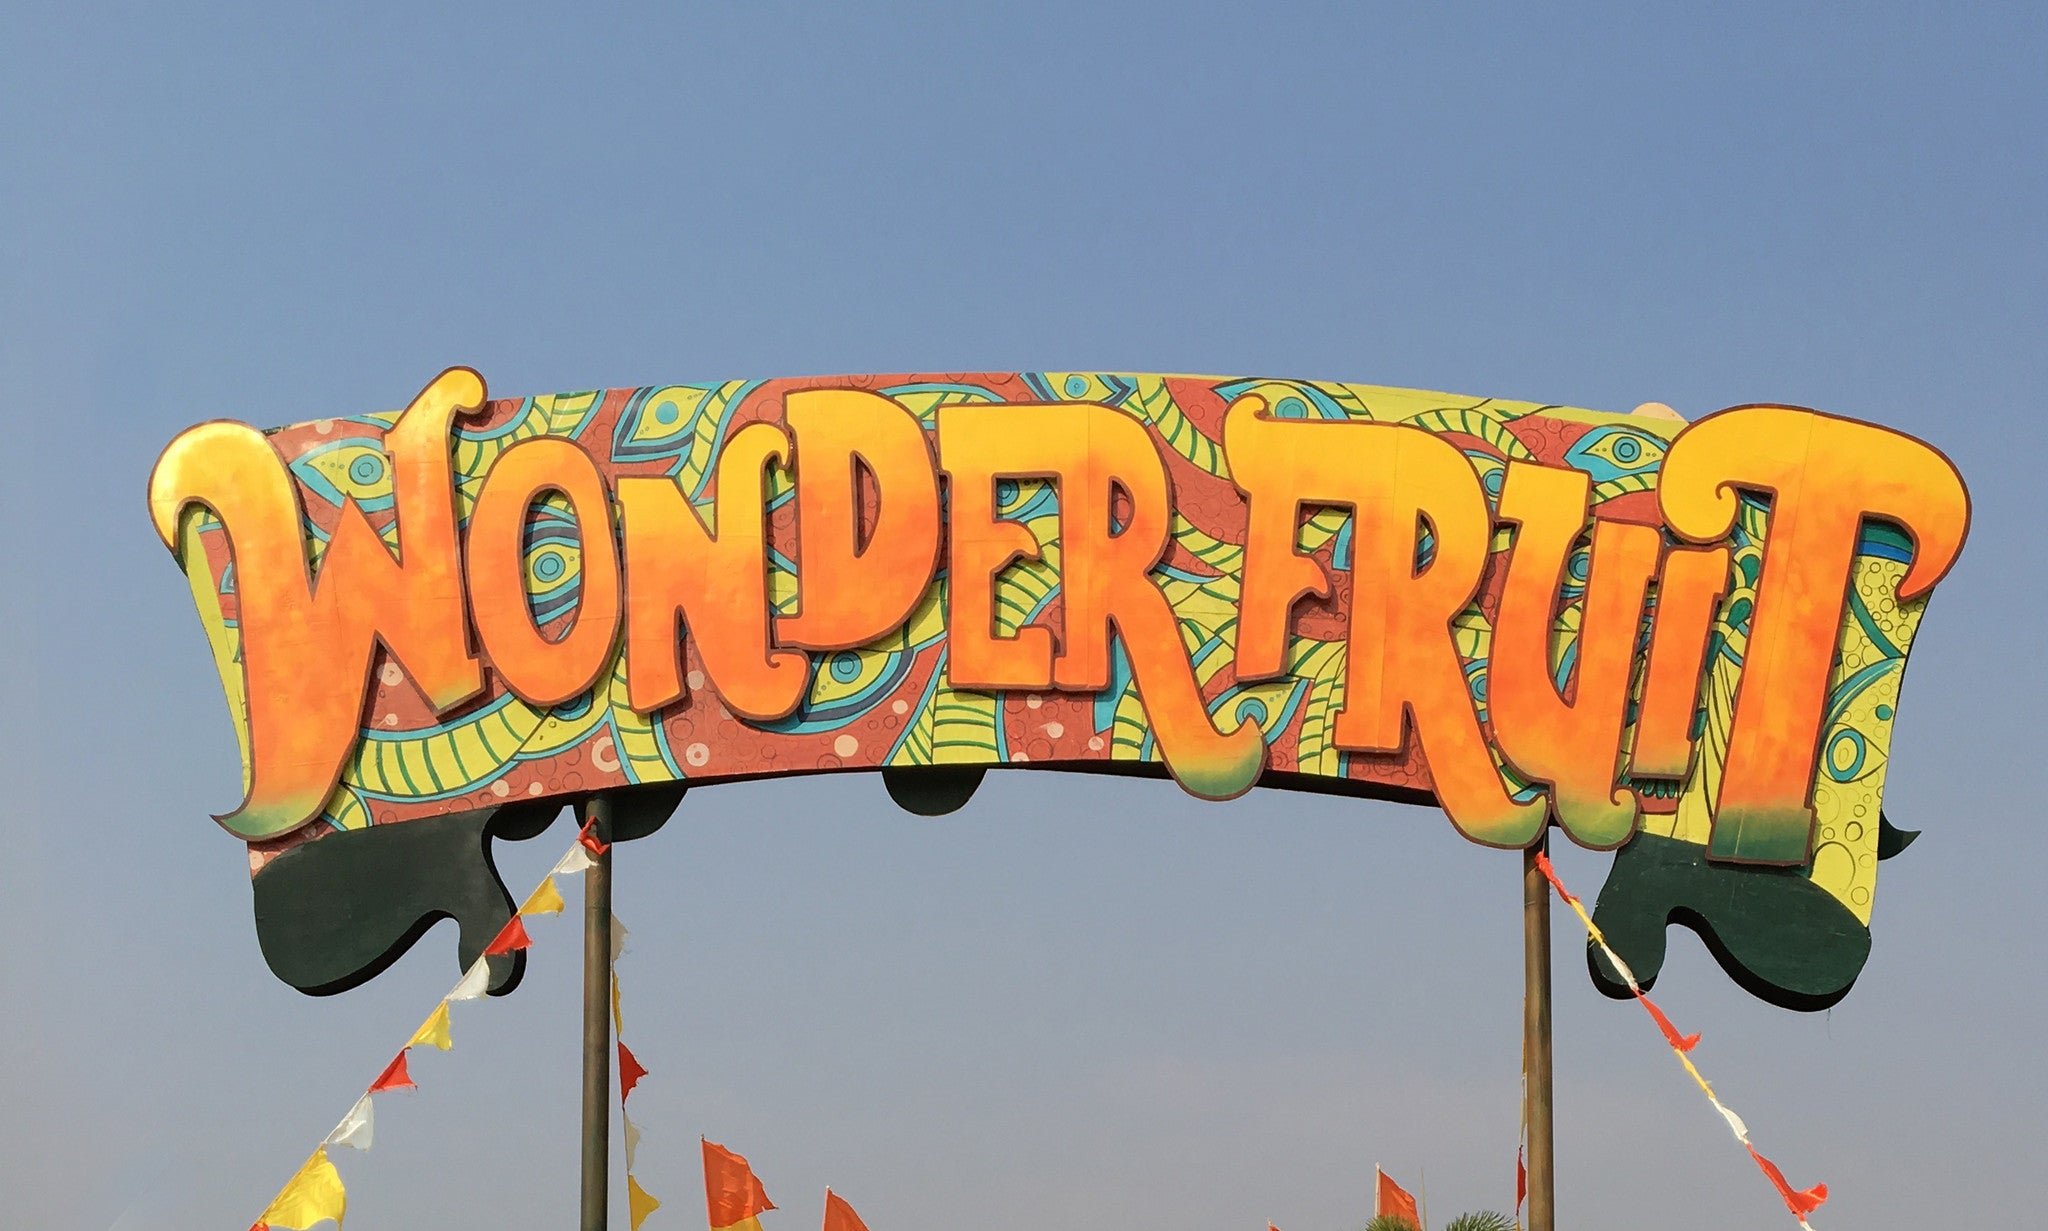 wonderfruit festival banner entrance